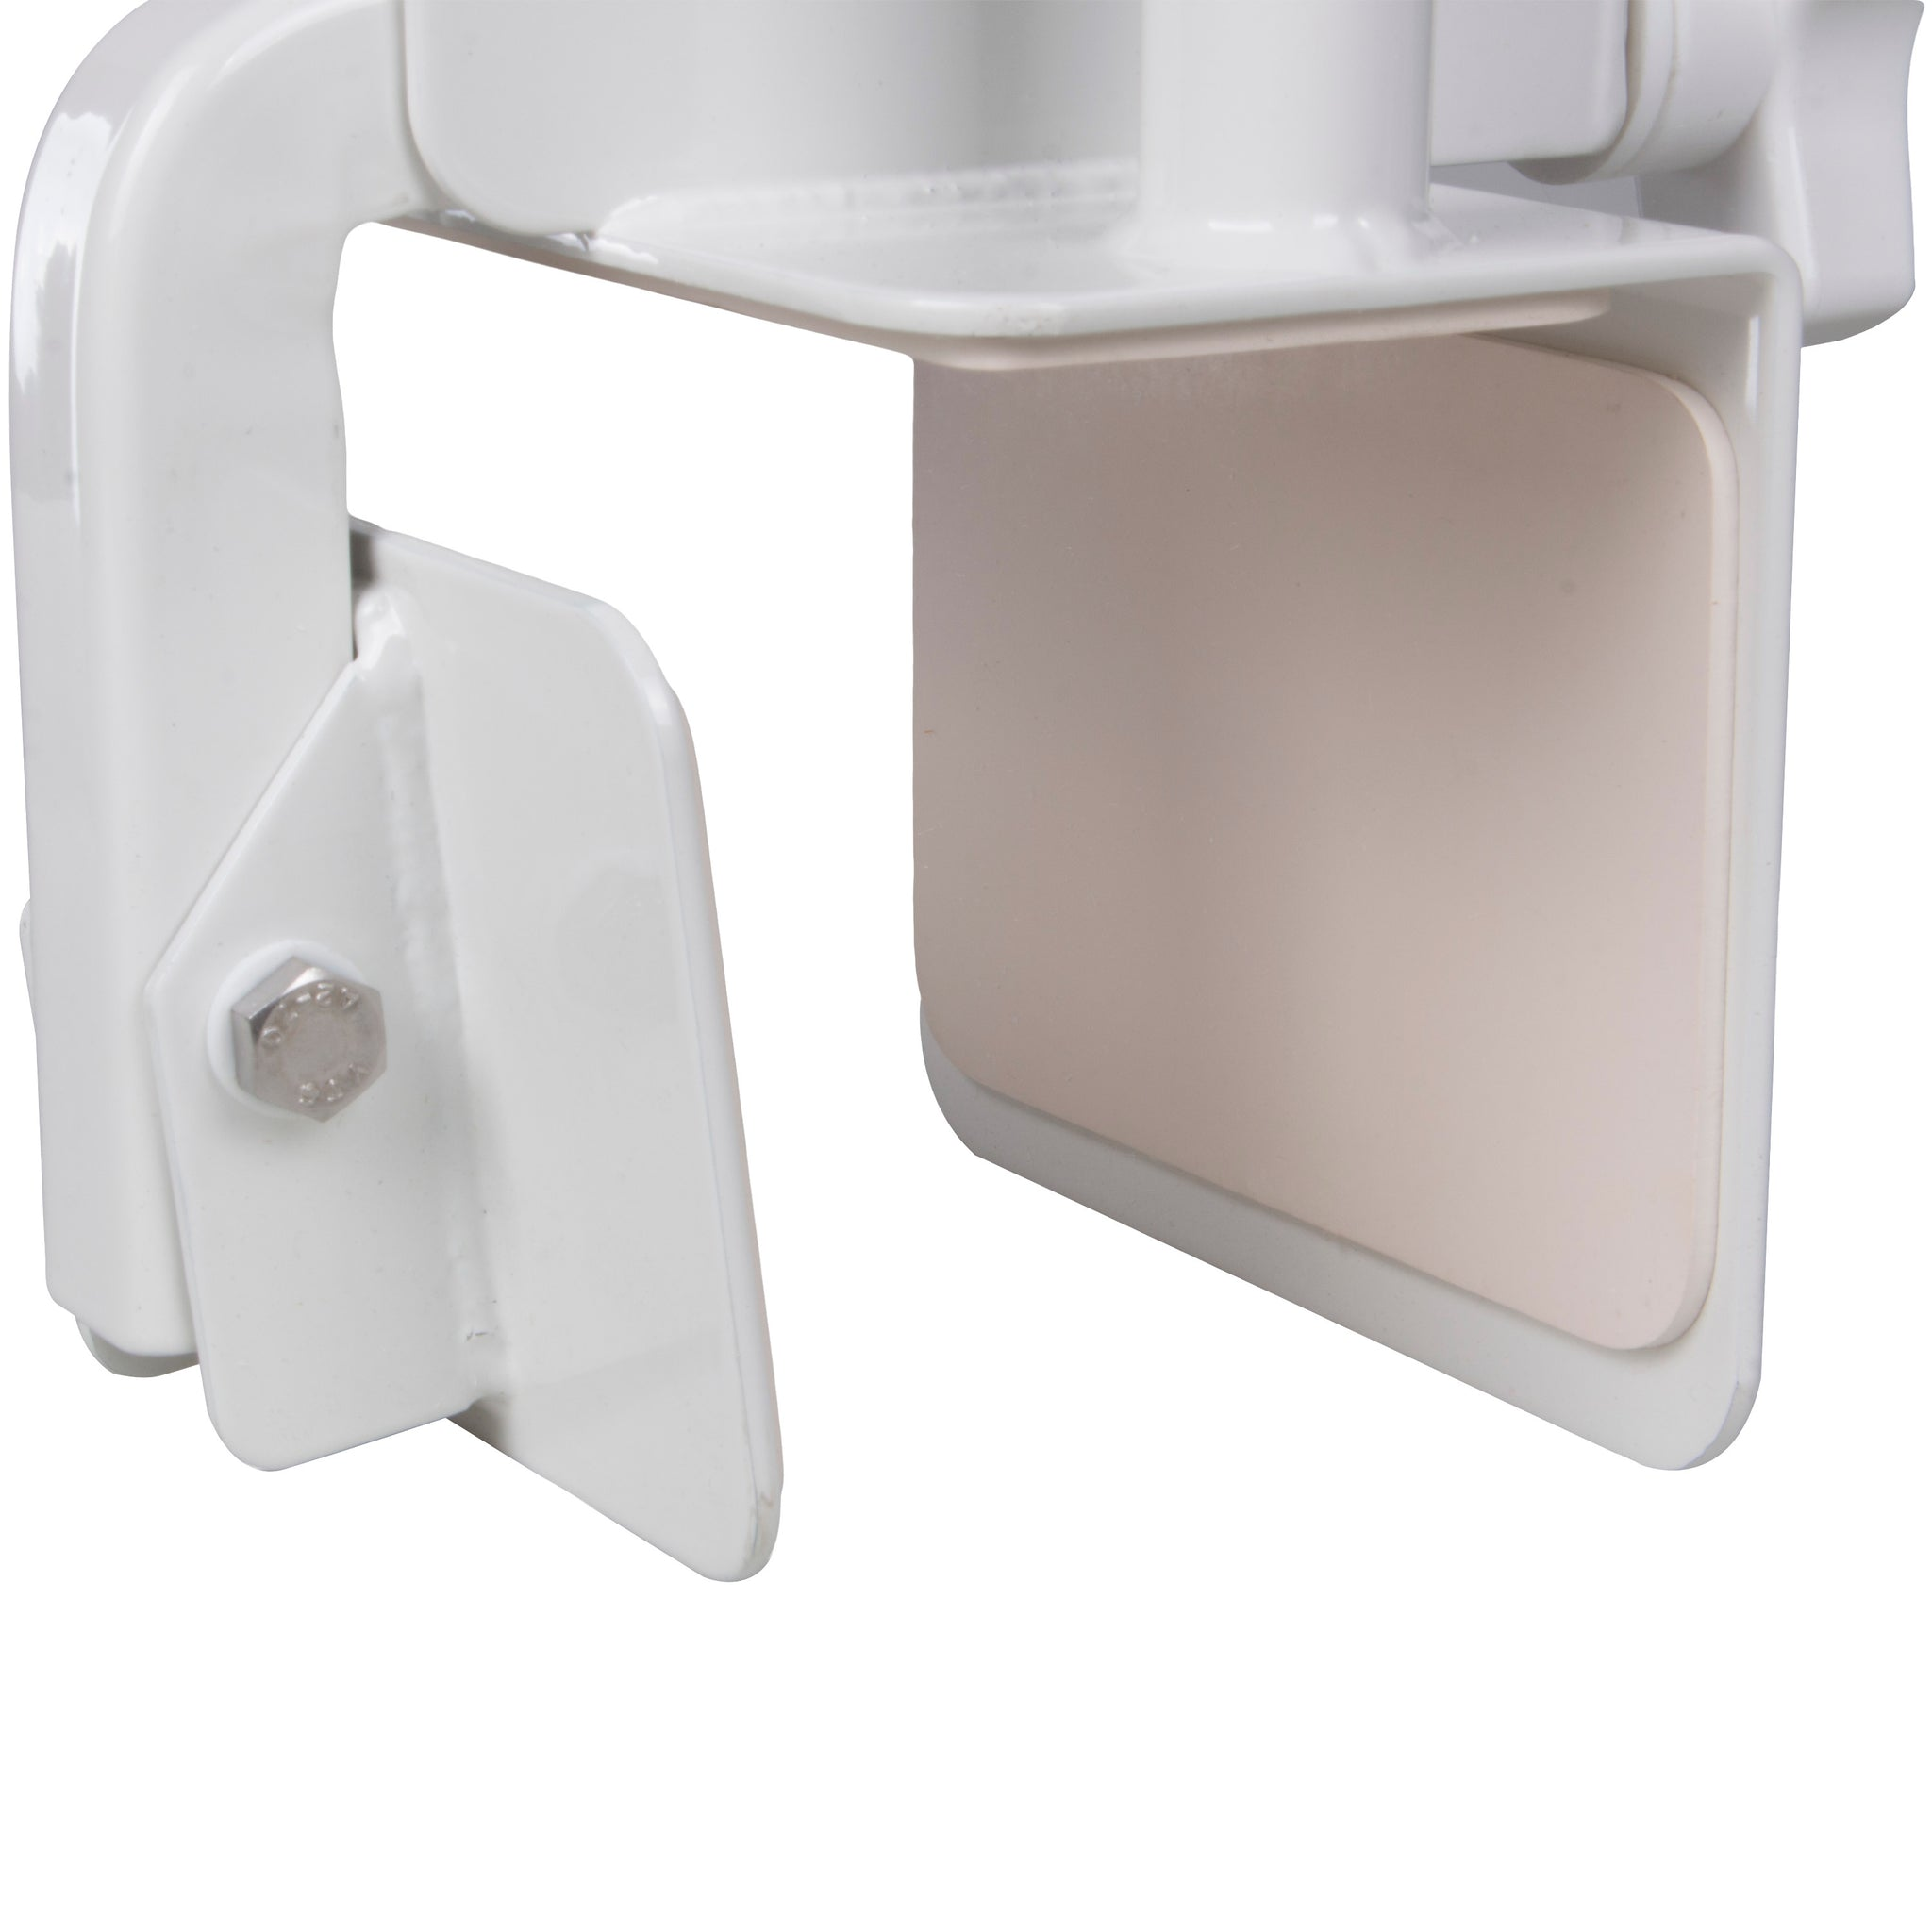 7252 / Sure-Grip Bathtub Safety Rail – PCPMedical